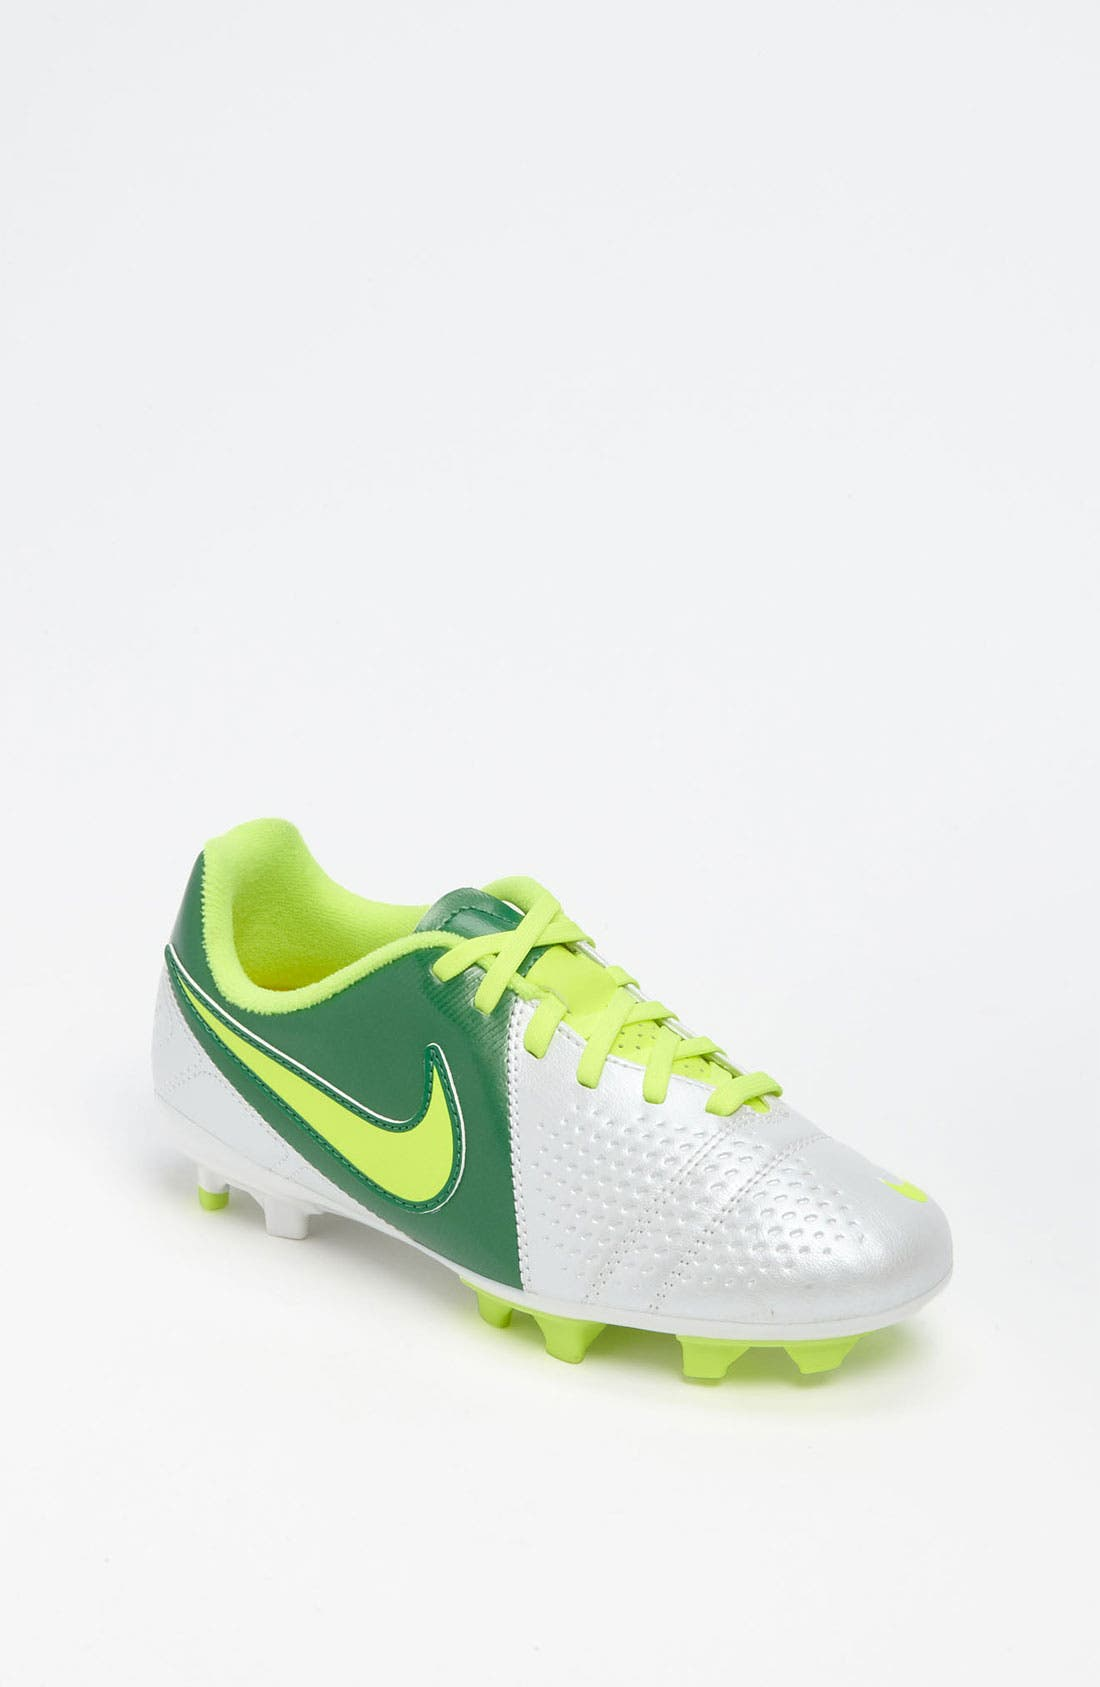 Main Image - Nike 'Jr. CTR360 Libretto III' Soccer Cleat (Toddler, Little Kid & Big Kid)